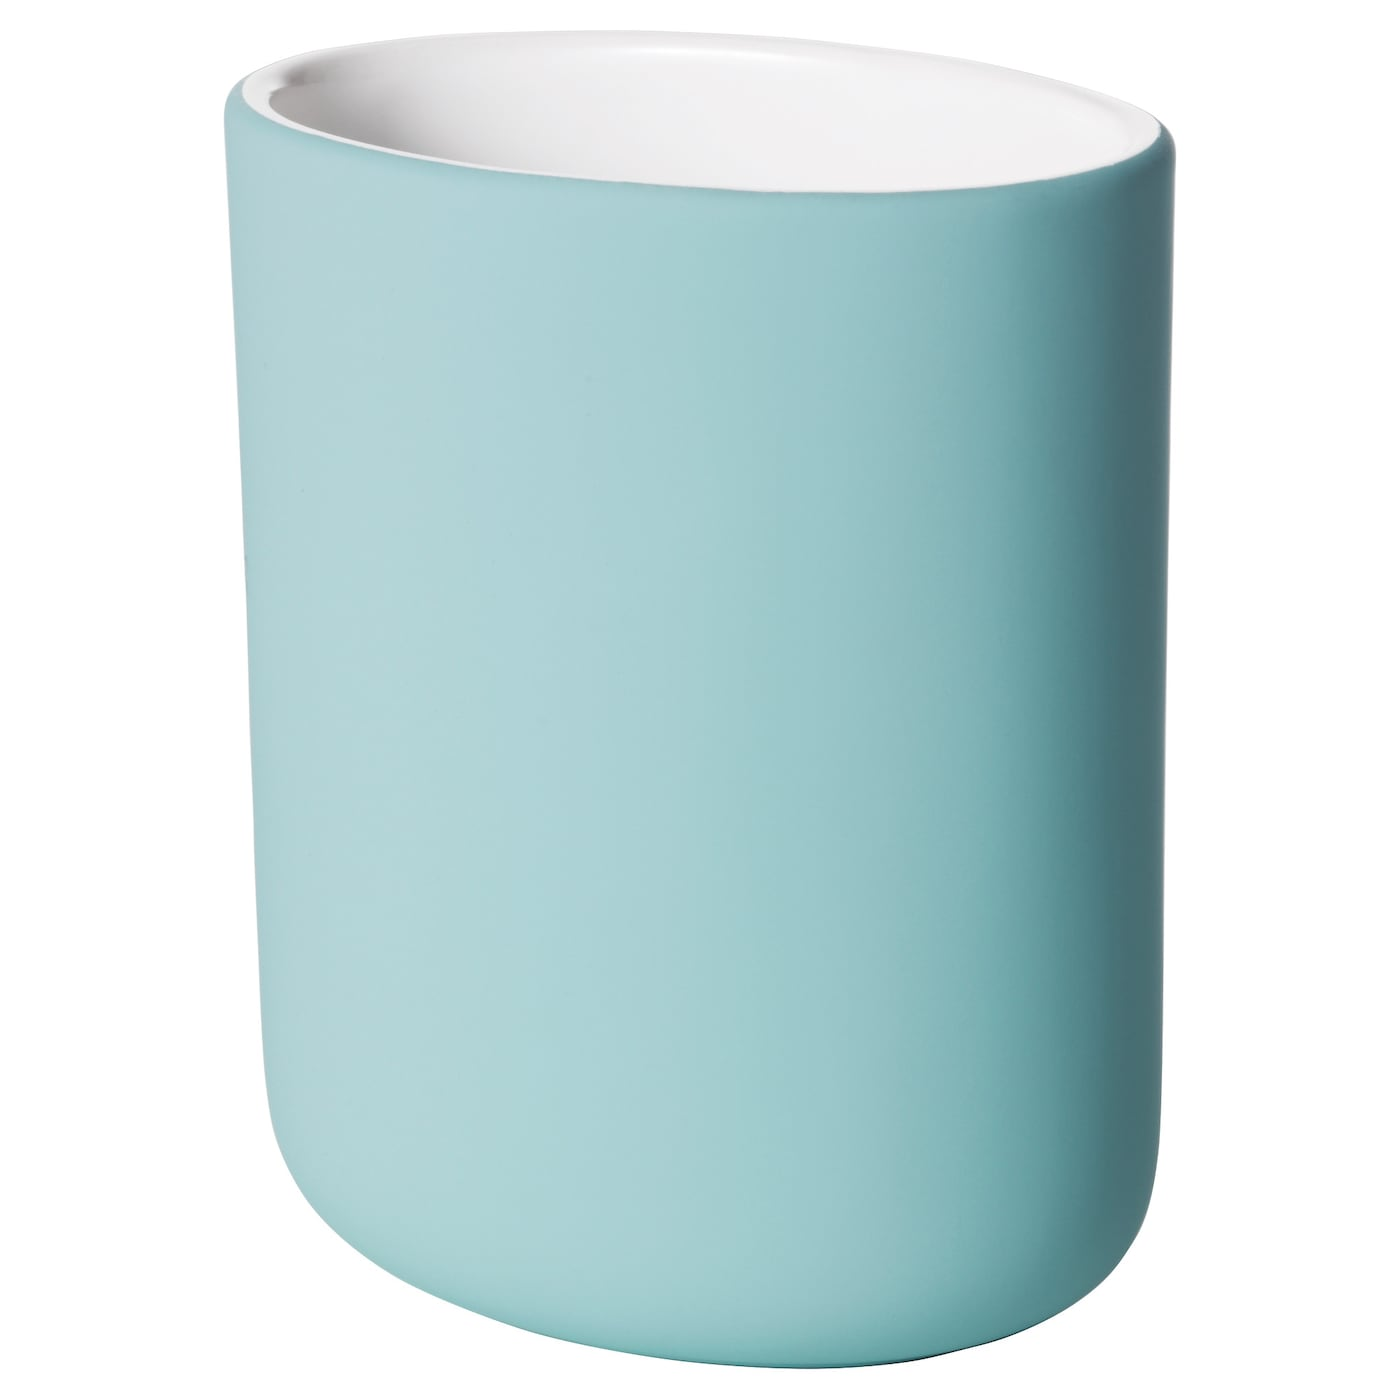 IKEA EKOLN toothbrush holder Easy to keep clean by just wiping with a damp cloth.